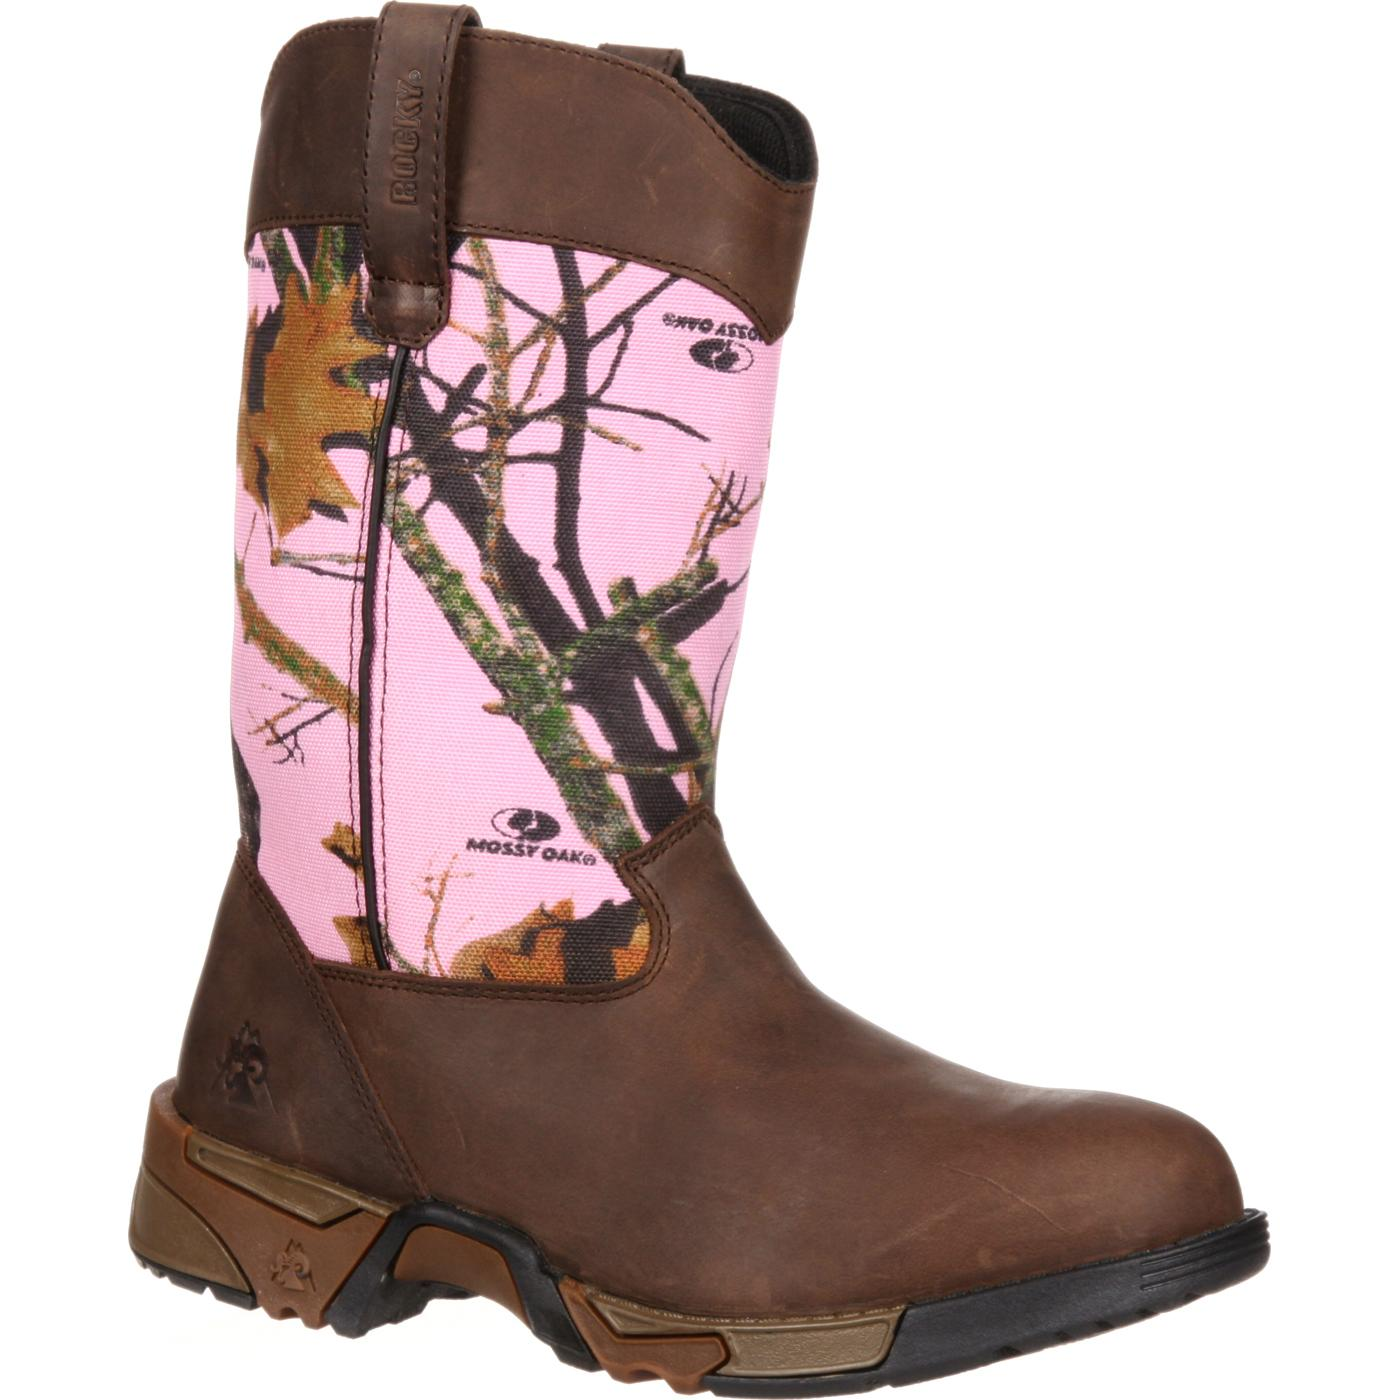 Rocky Women's Aztec Pink Camouflage Boot, style #RKYS133